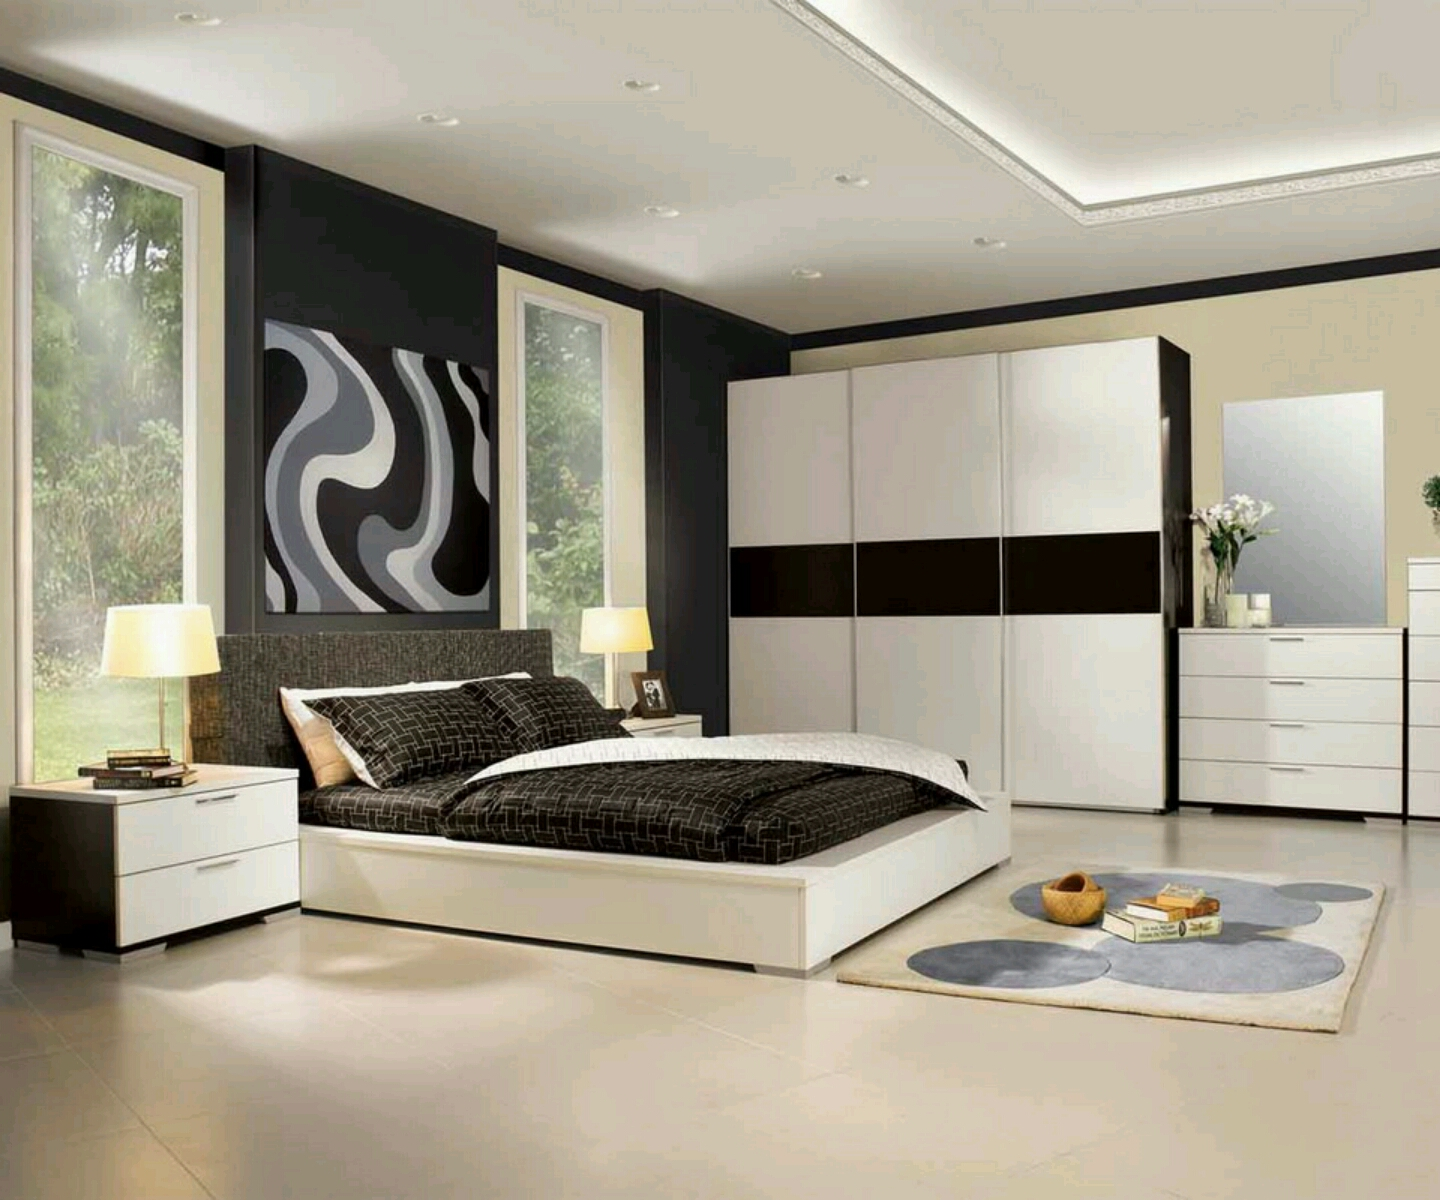 Modern luxury bedroom furniture designs ideas vintage for New bedroom design ideas